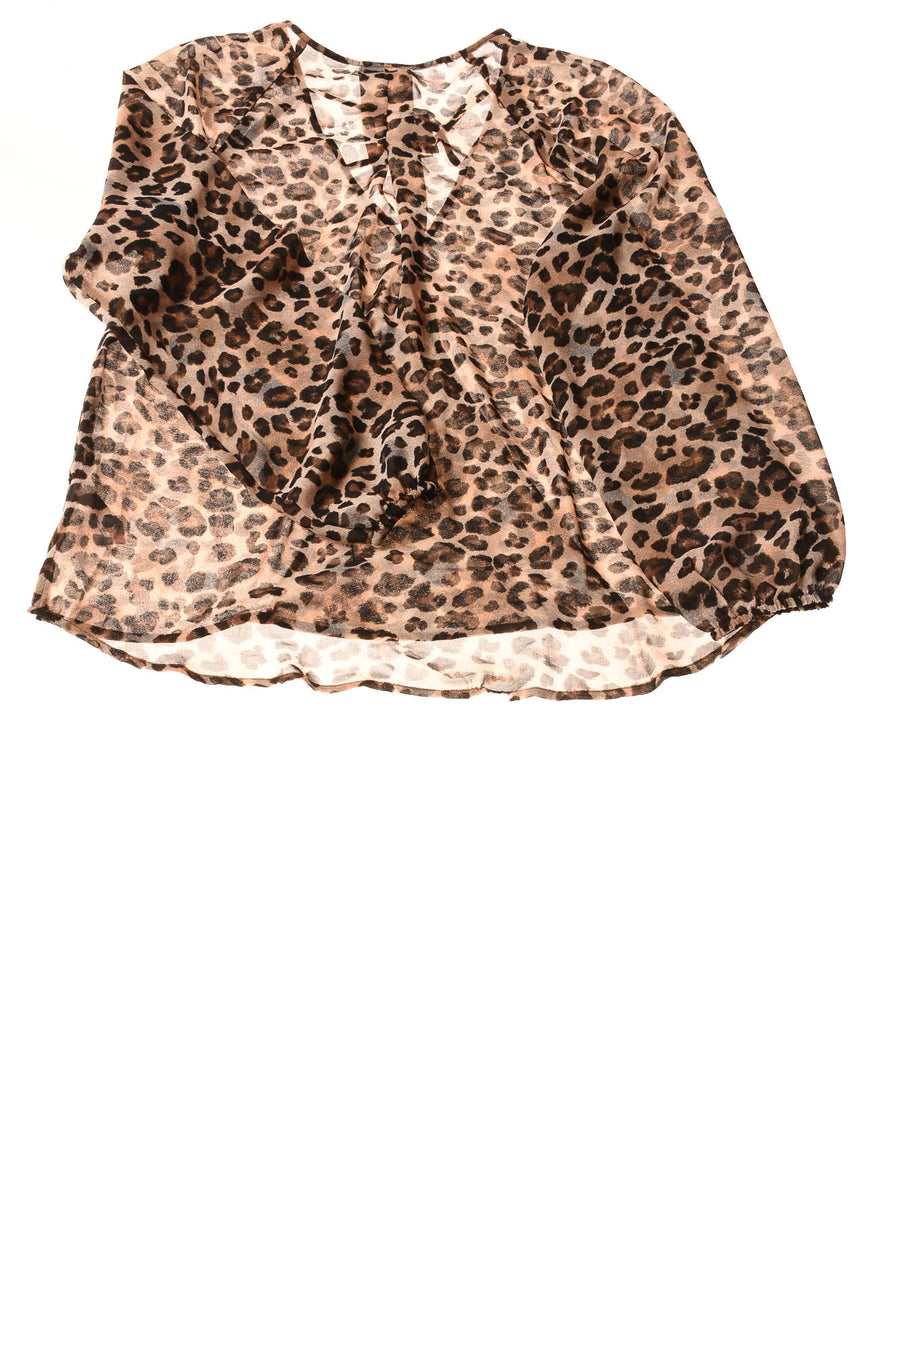 NEW Maurices Women's Top Large Brown / Cheetah Print